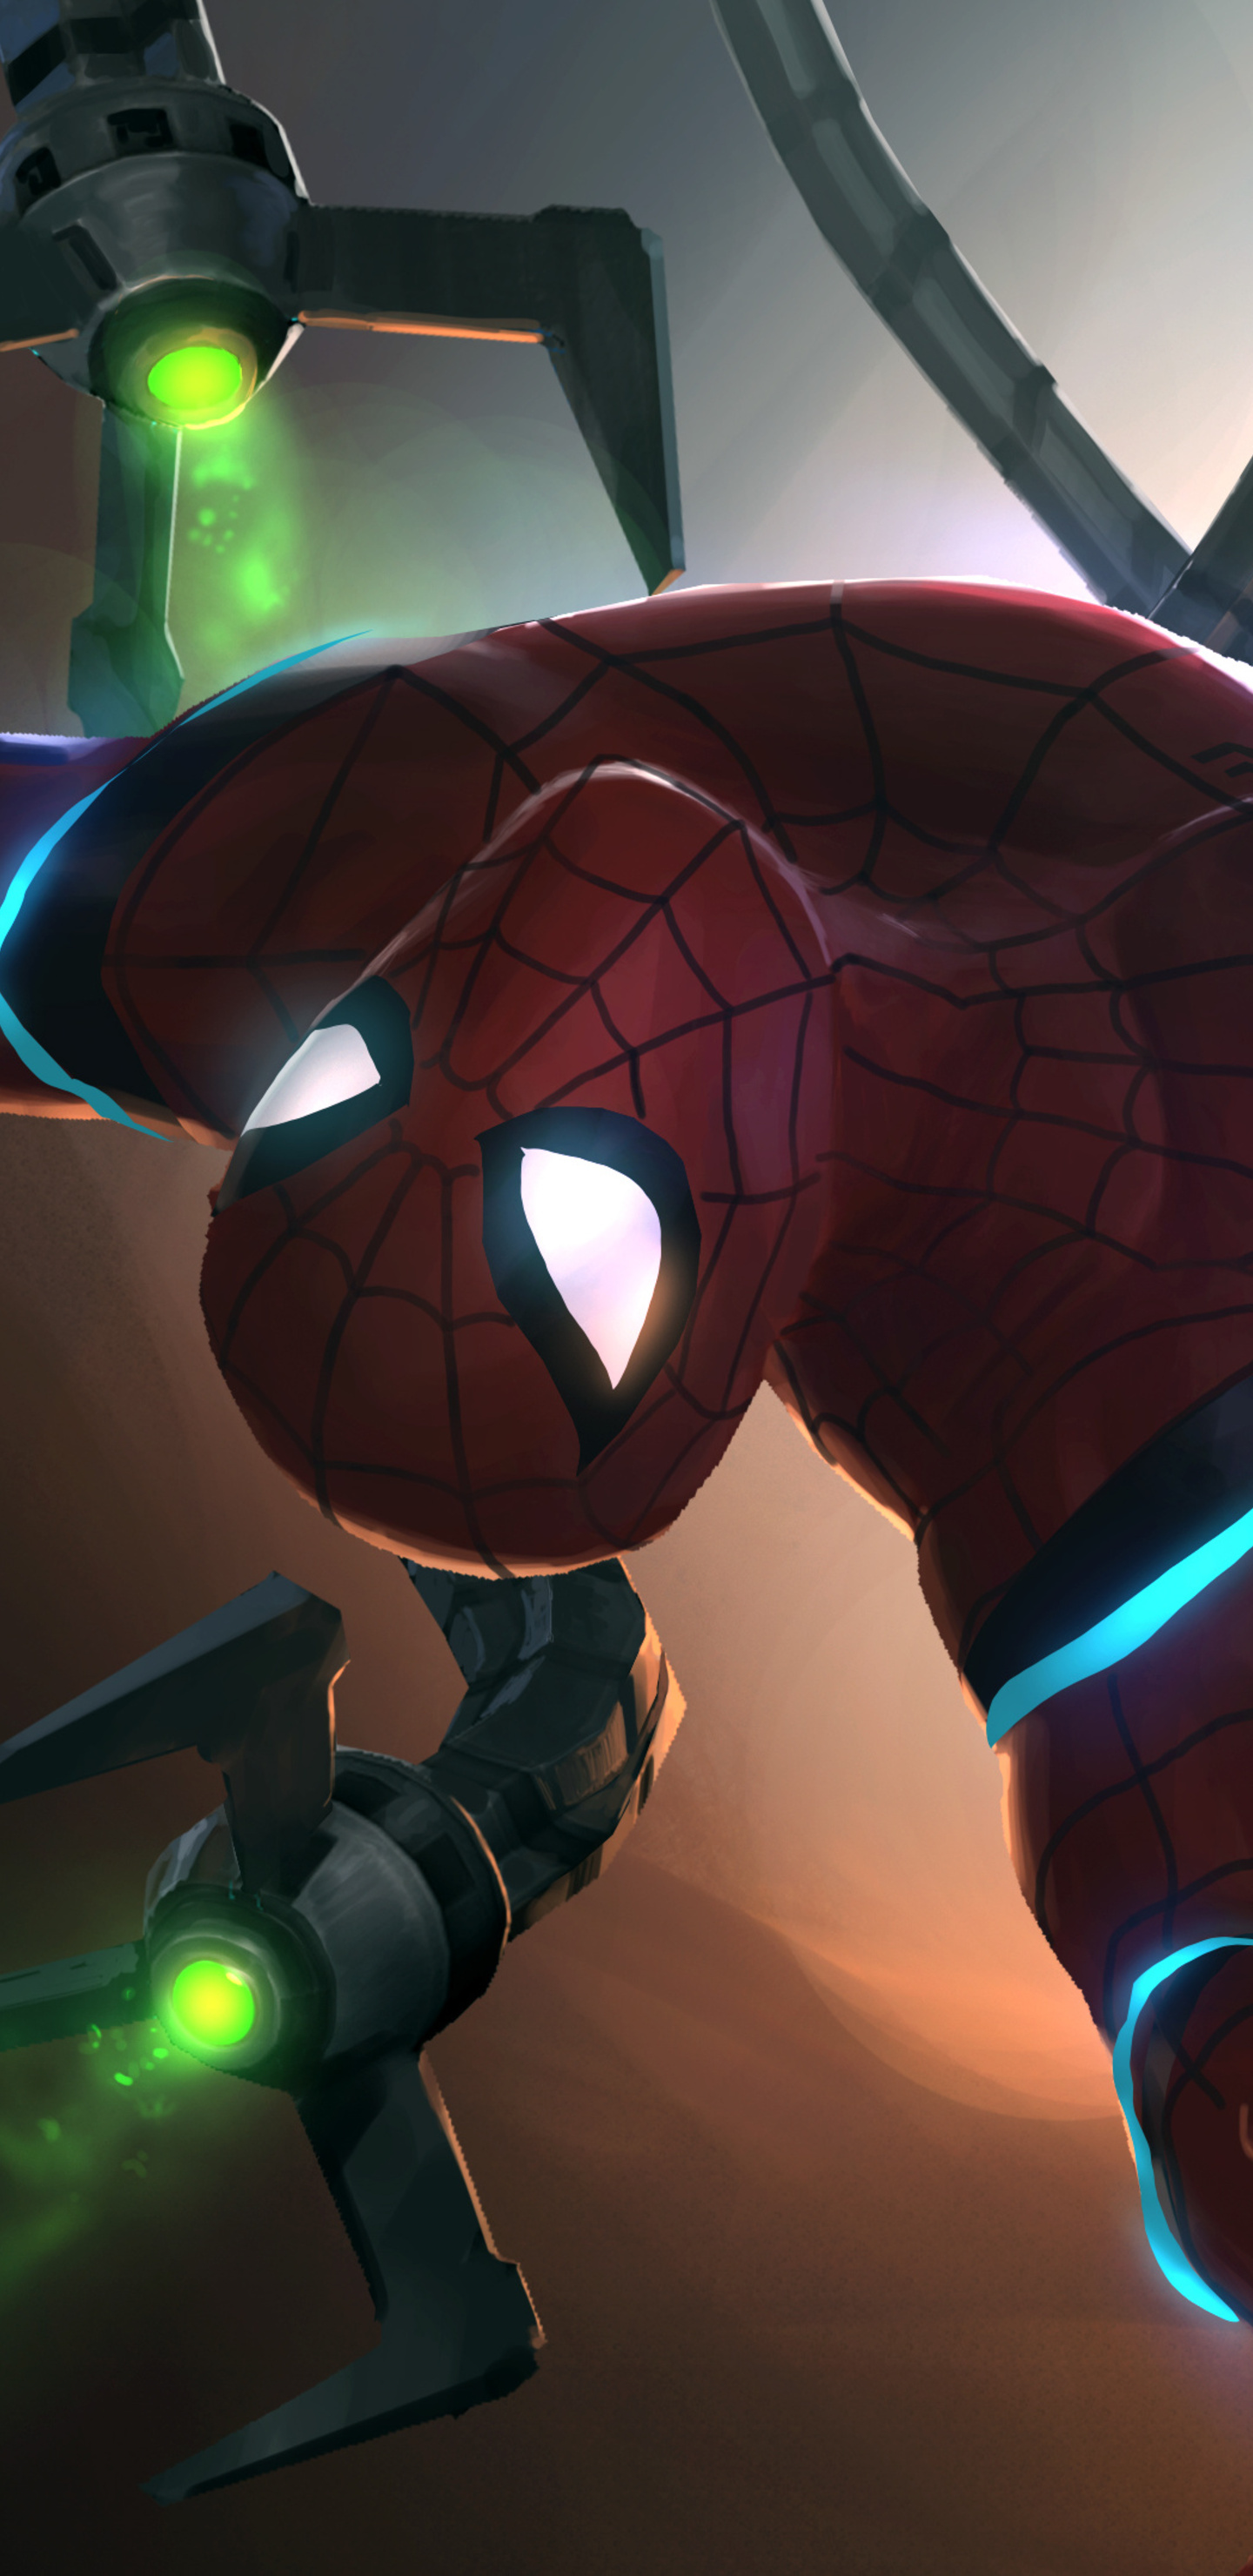 1440x2960 Doctor Octopus Vs Spiderman Contest Of Champions